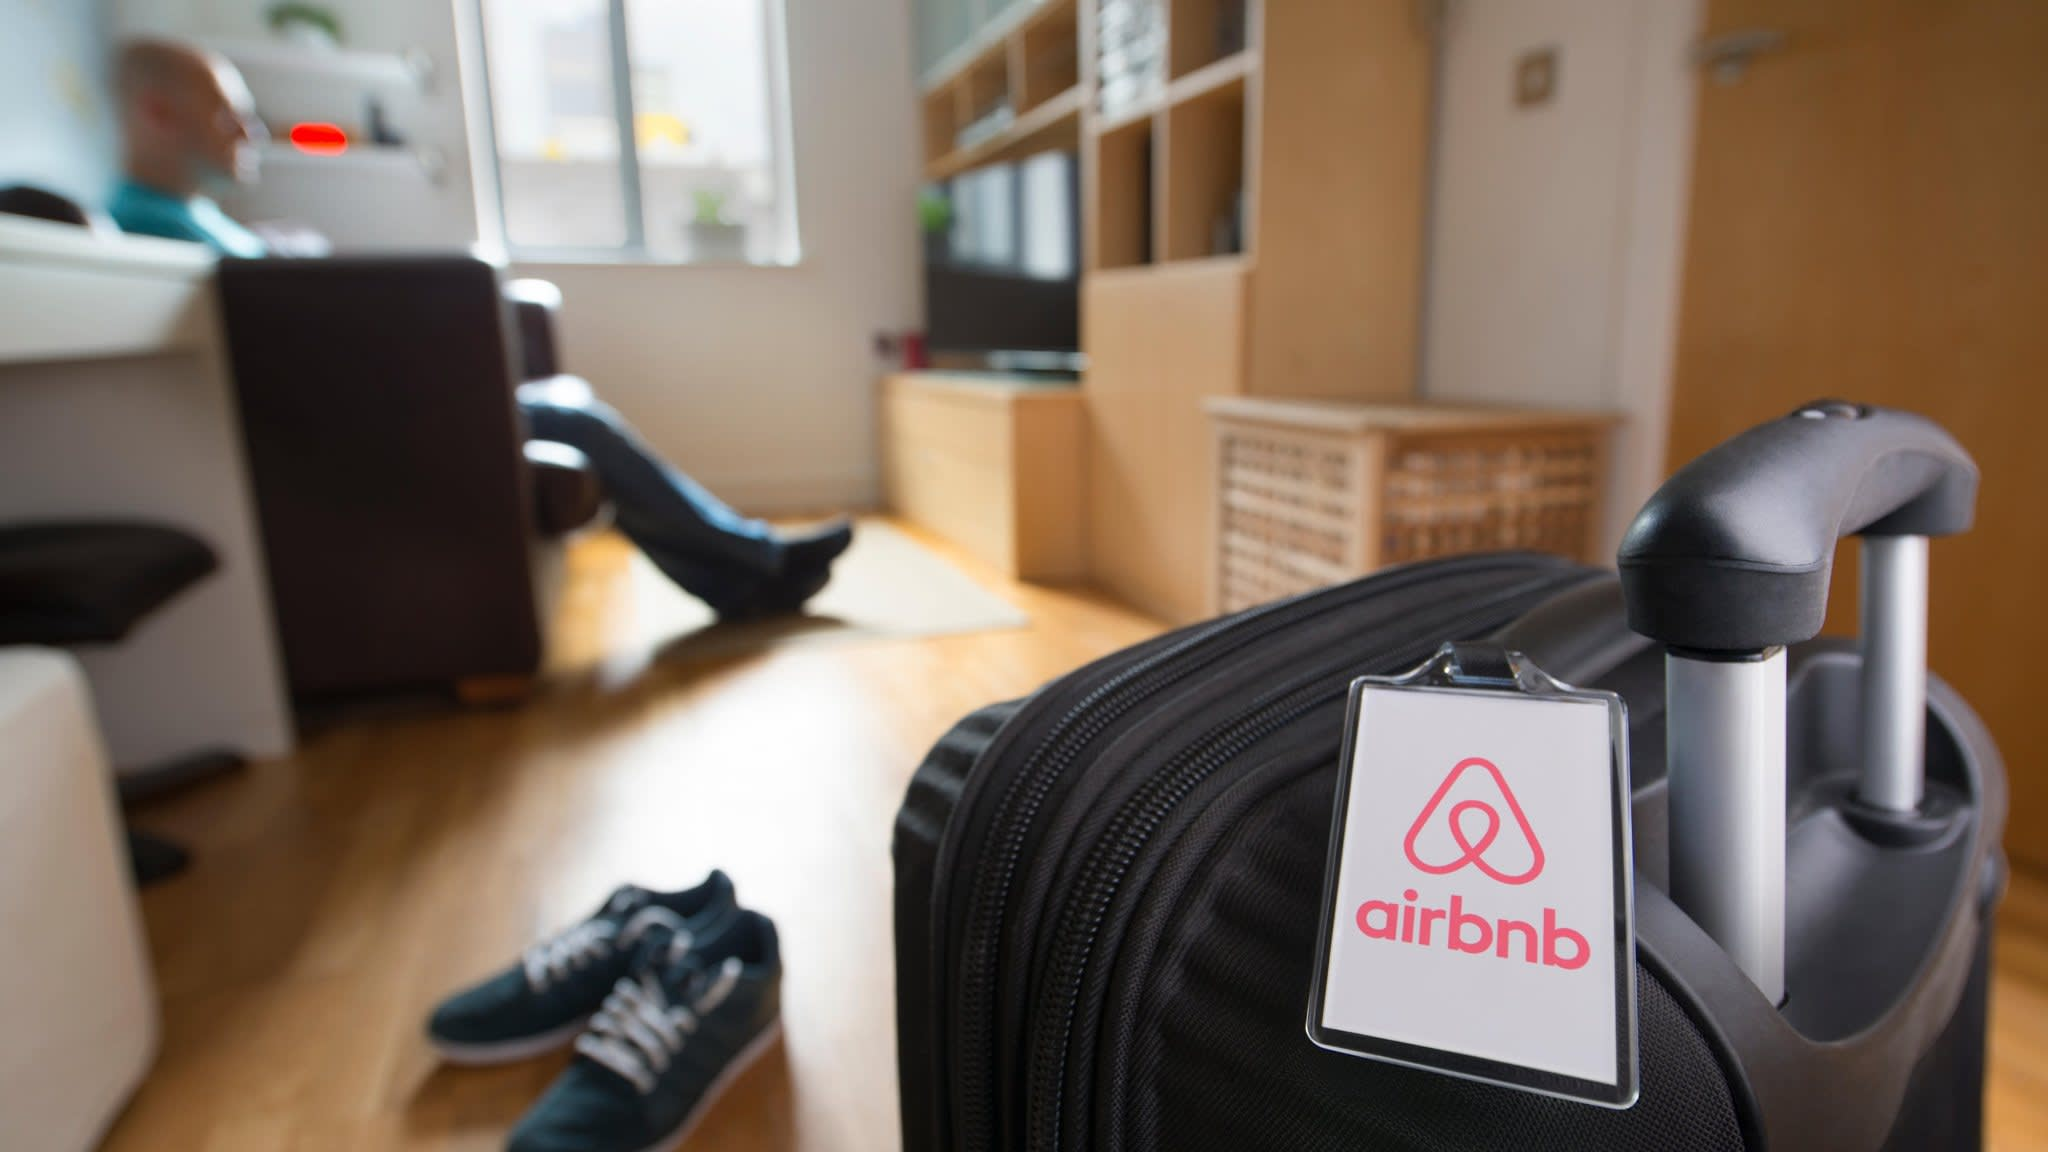 EU warns Airbnb on pricing transparency